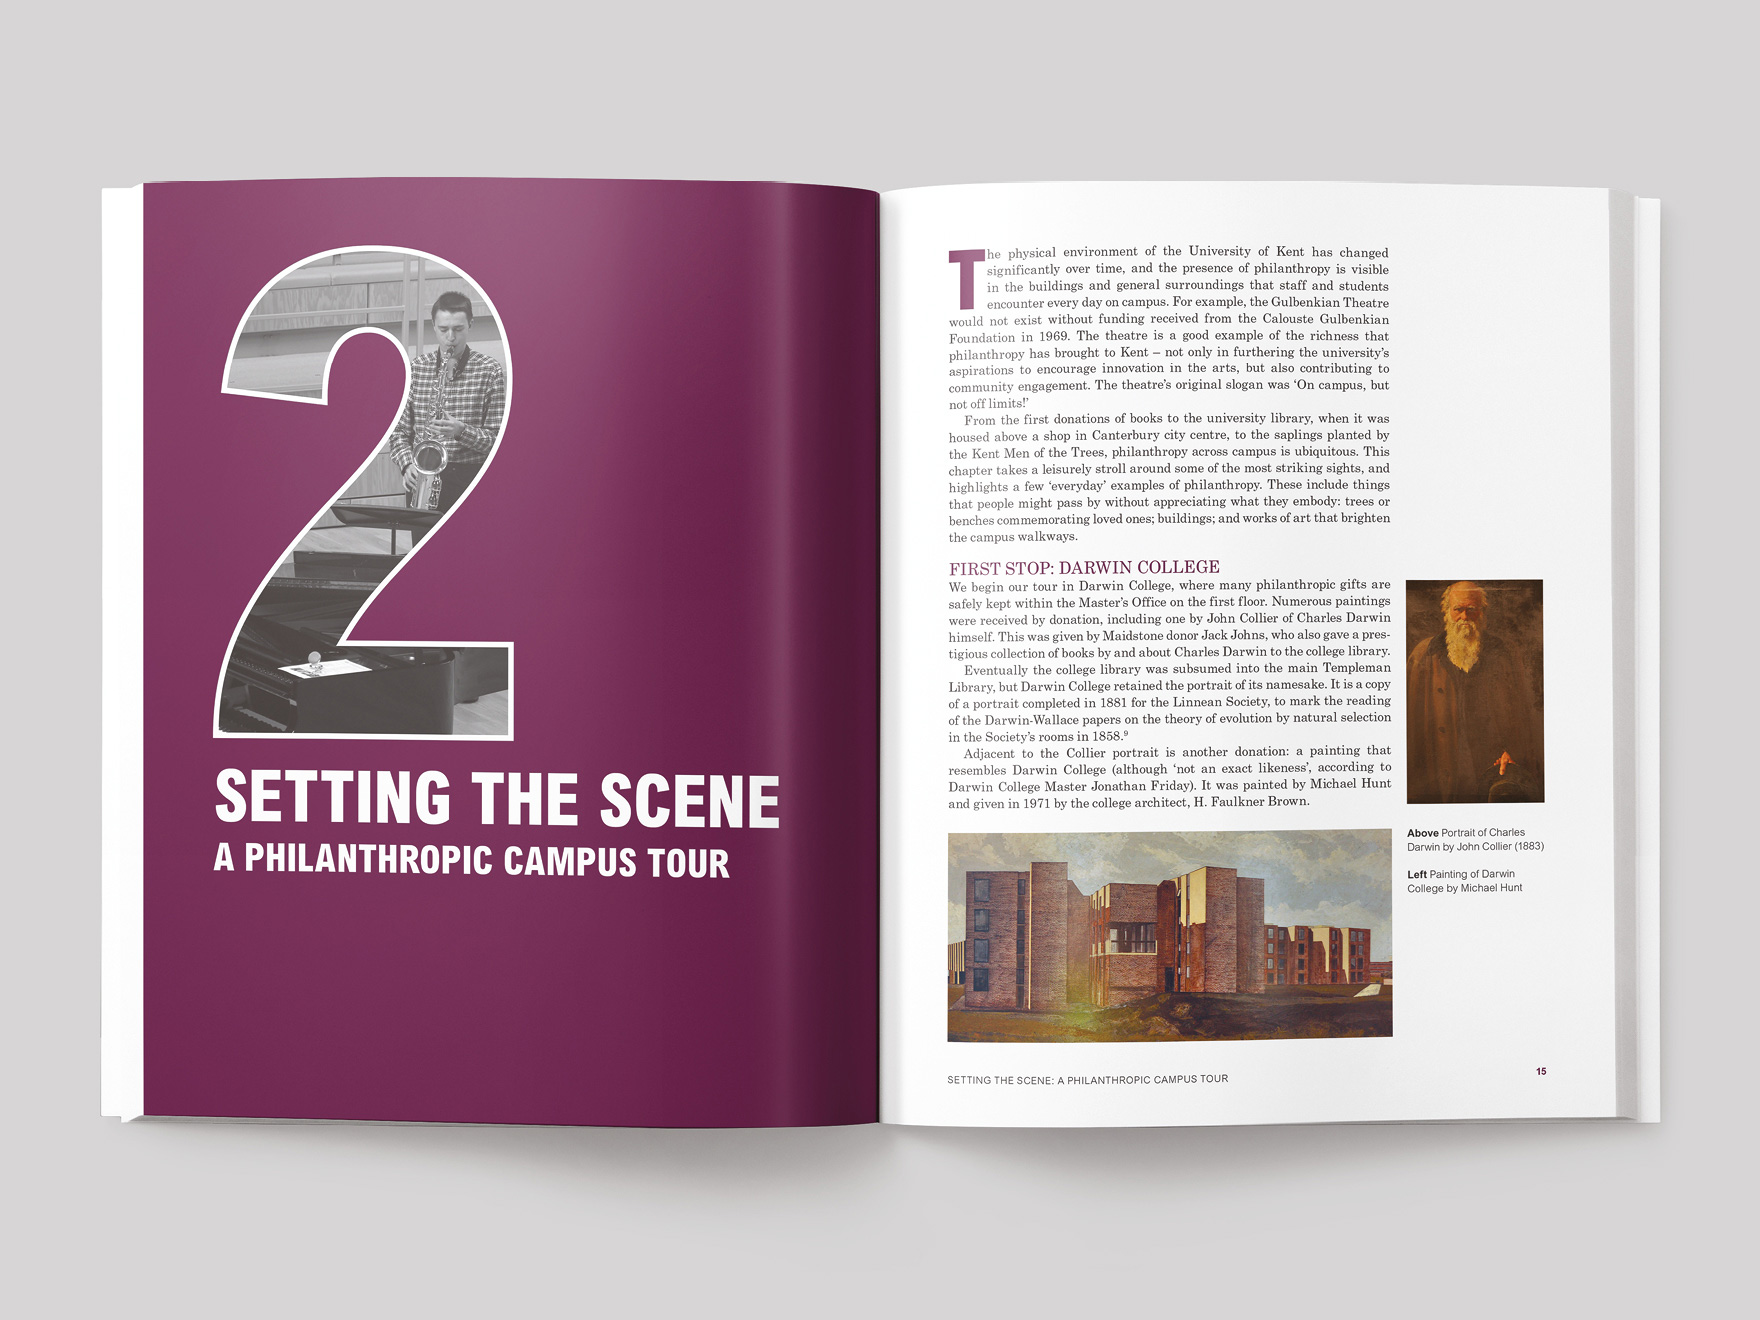 Inside pages from the Hidden History book showing the opener for chapter two, a philanthropic campus tour